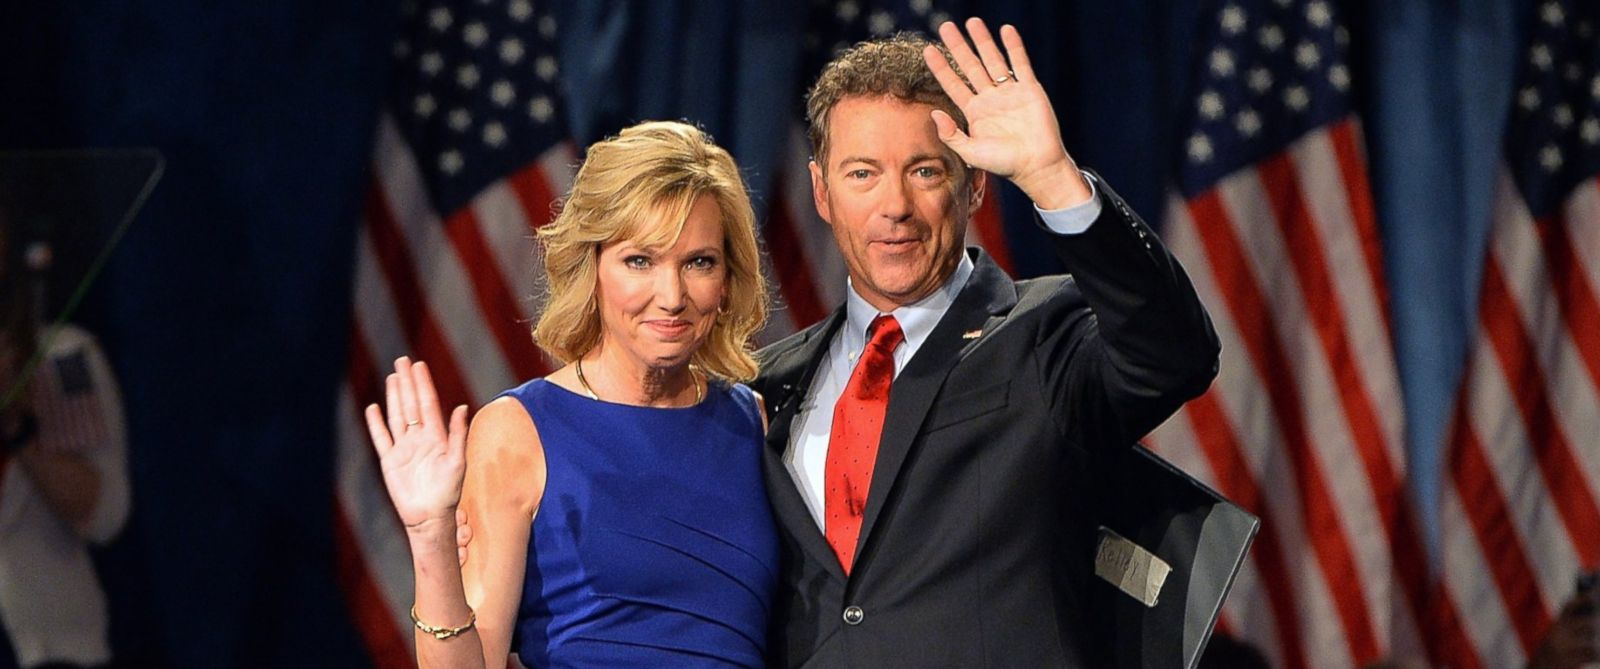 PHOTO: Rand Paul greets the crowd with his wife, Kelley Paul, prior to speaking to supporters on April 7, 2015 in Louisville, Ky.